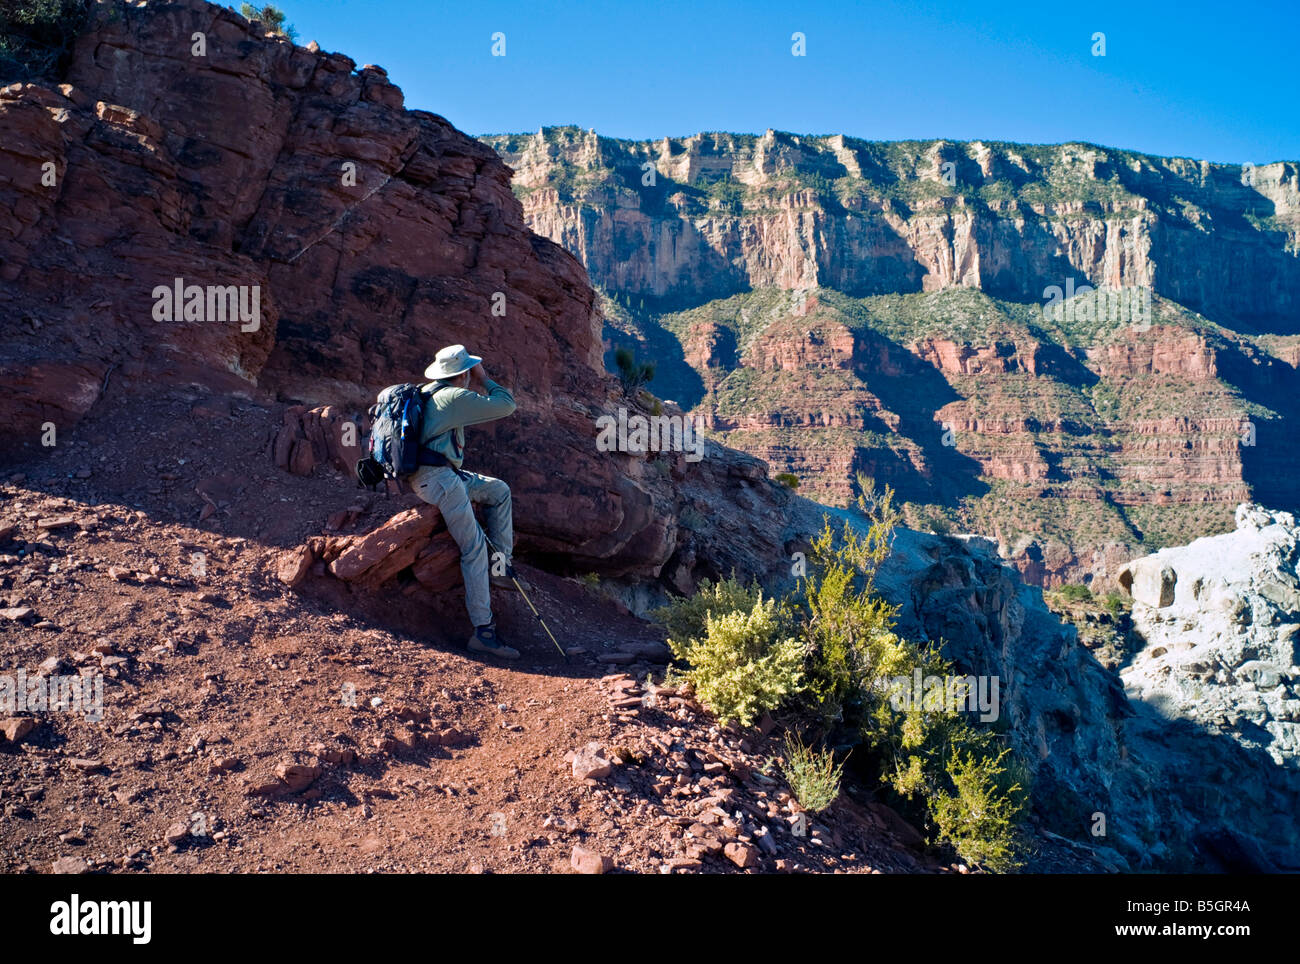 ARIZONA GRAND CANYON Hiker pauses to look at the view as he hikes down the South Kaibab Trail into the Grand Canyon - Stock Image